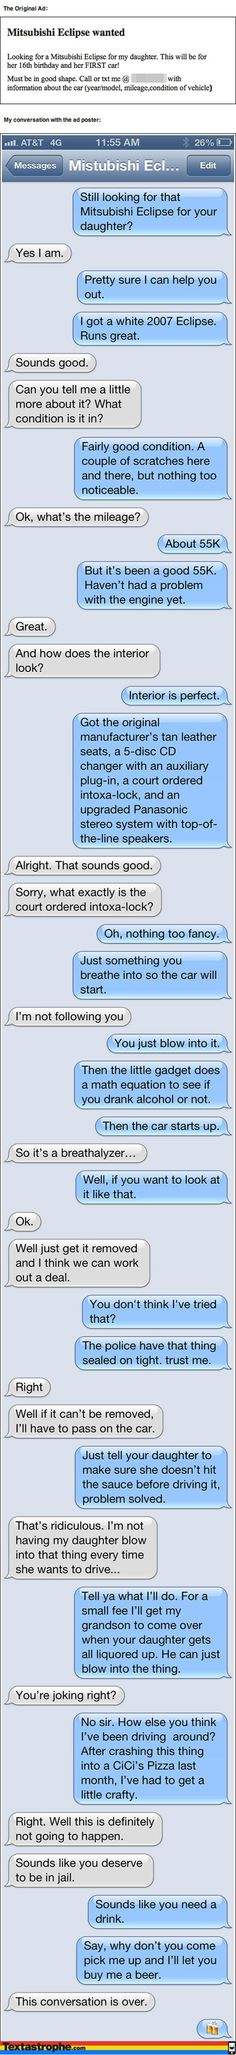 The 9 Most Epic Texting Pranks Of All Time. Haha!